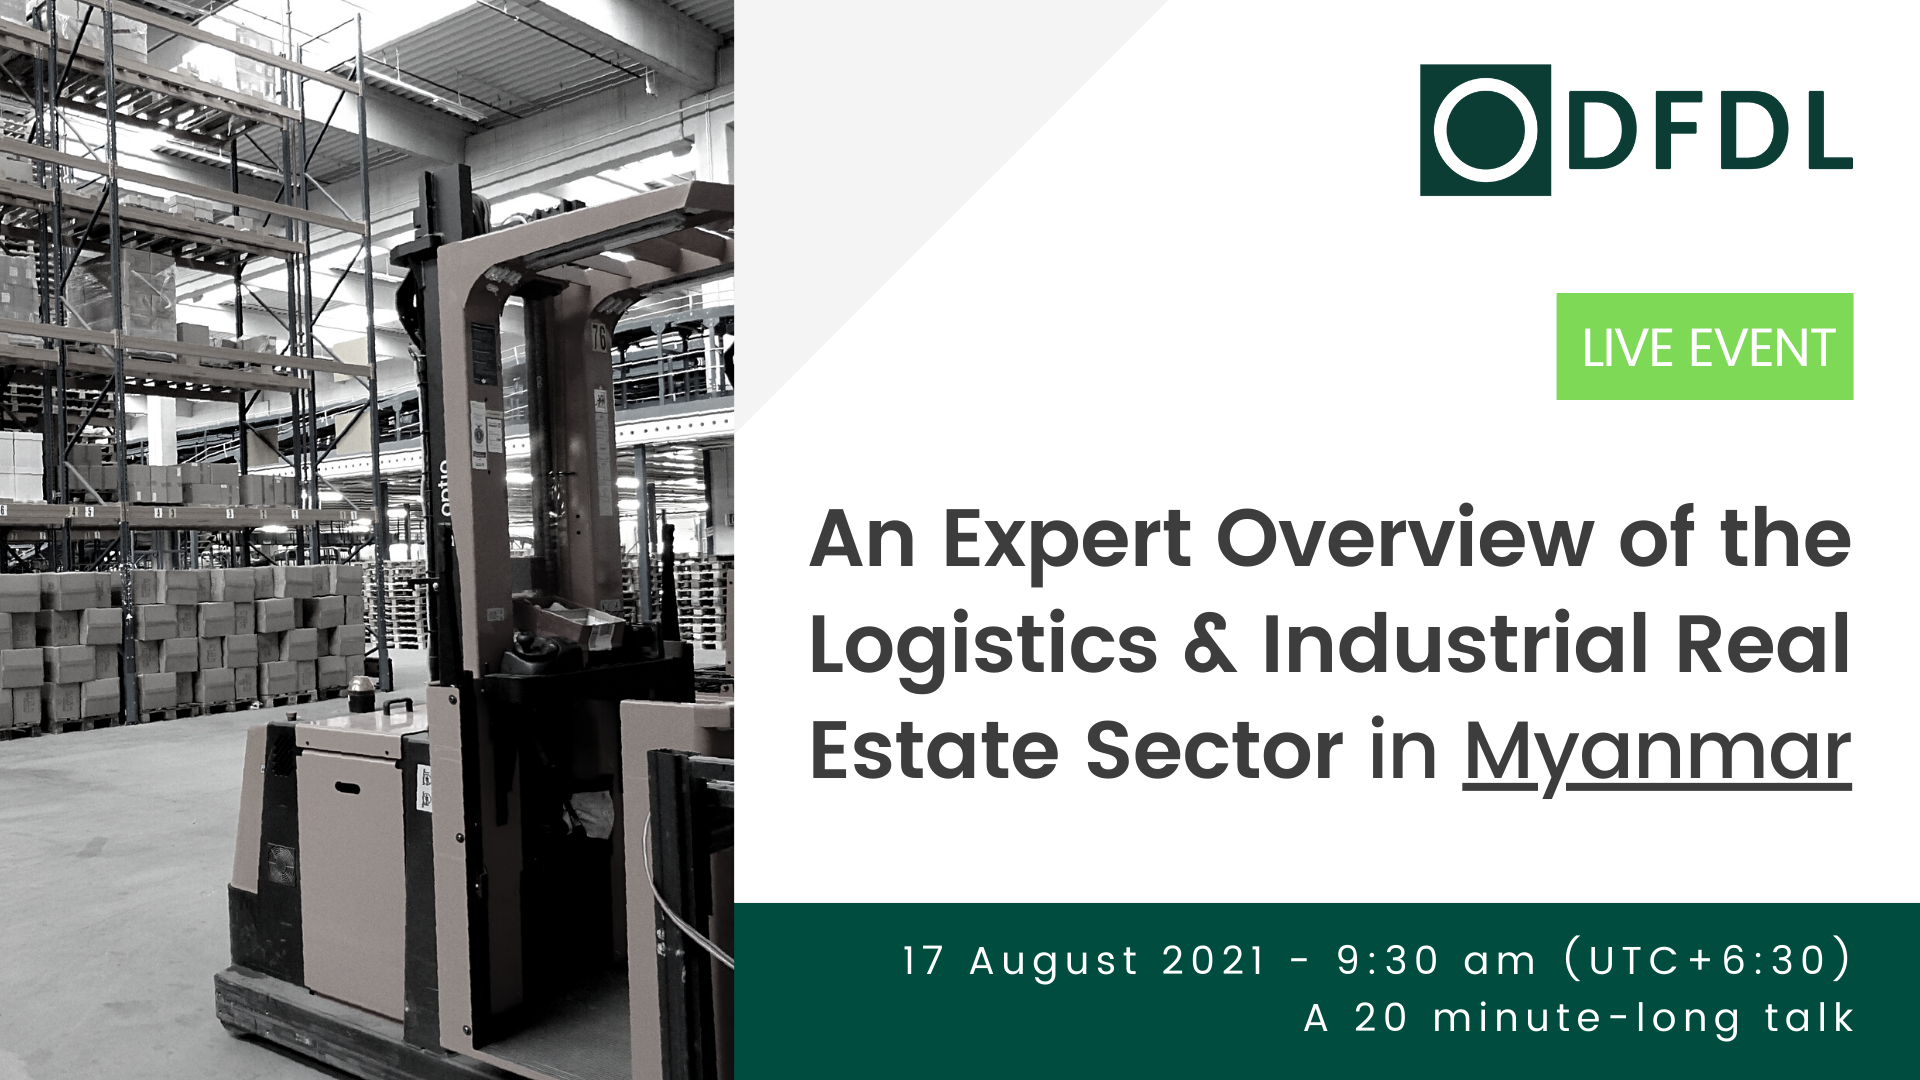 An Expert Overview of the Logistics & Industrial Real Estate Sector in Myanmar